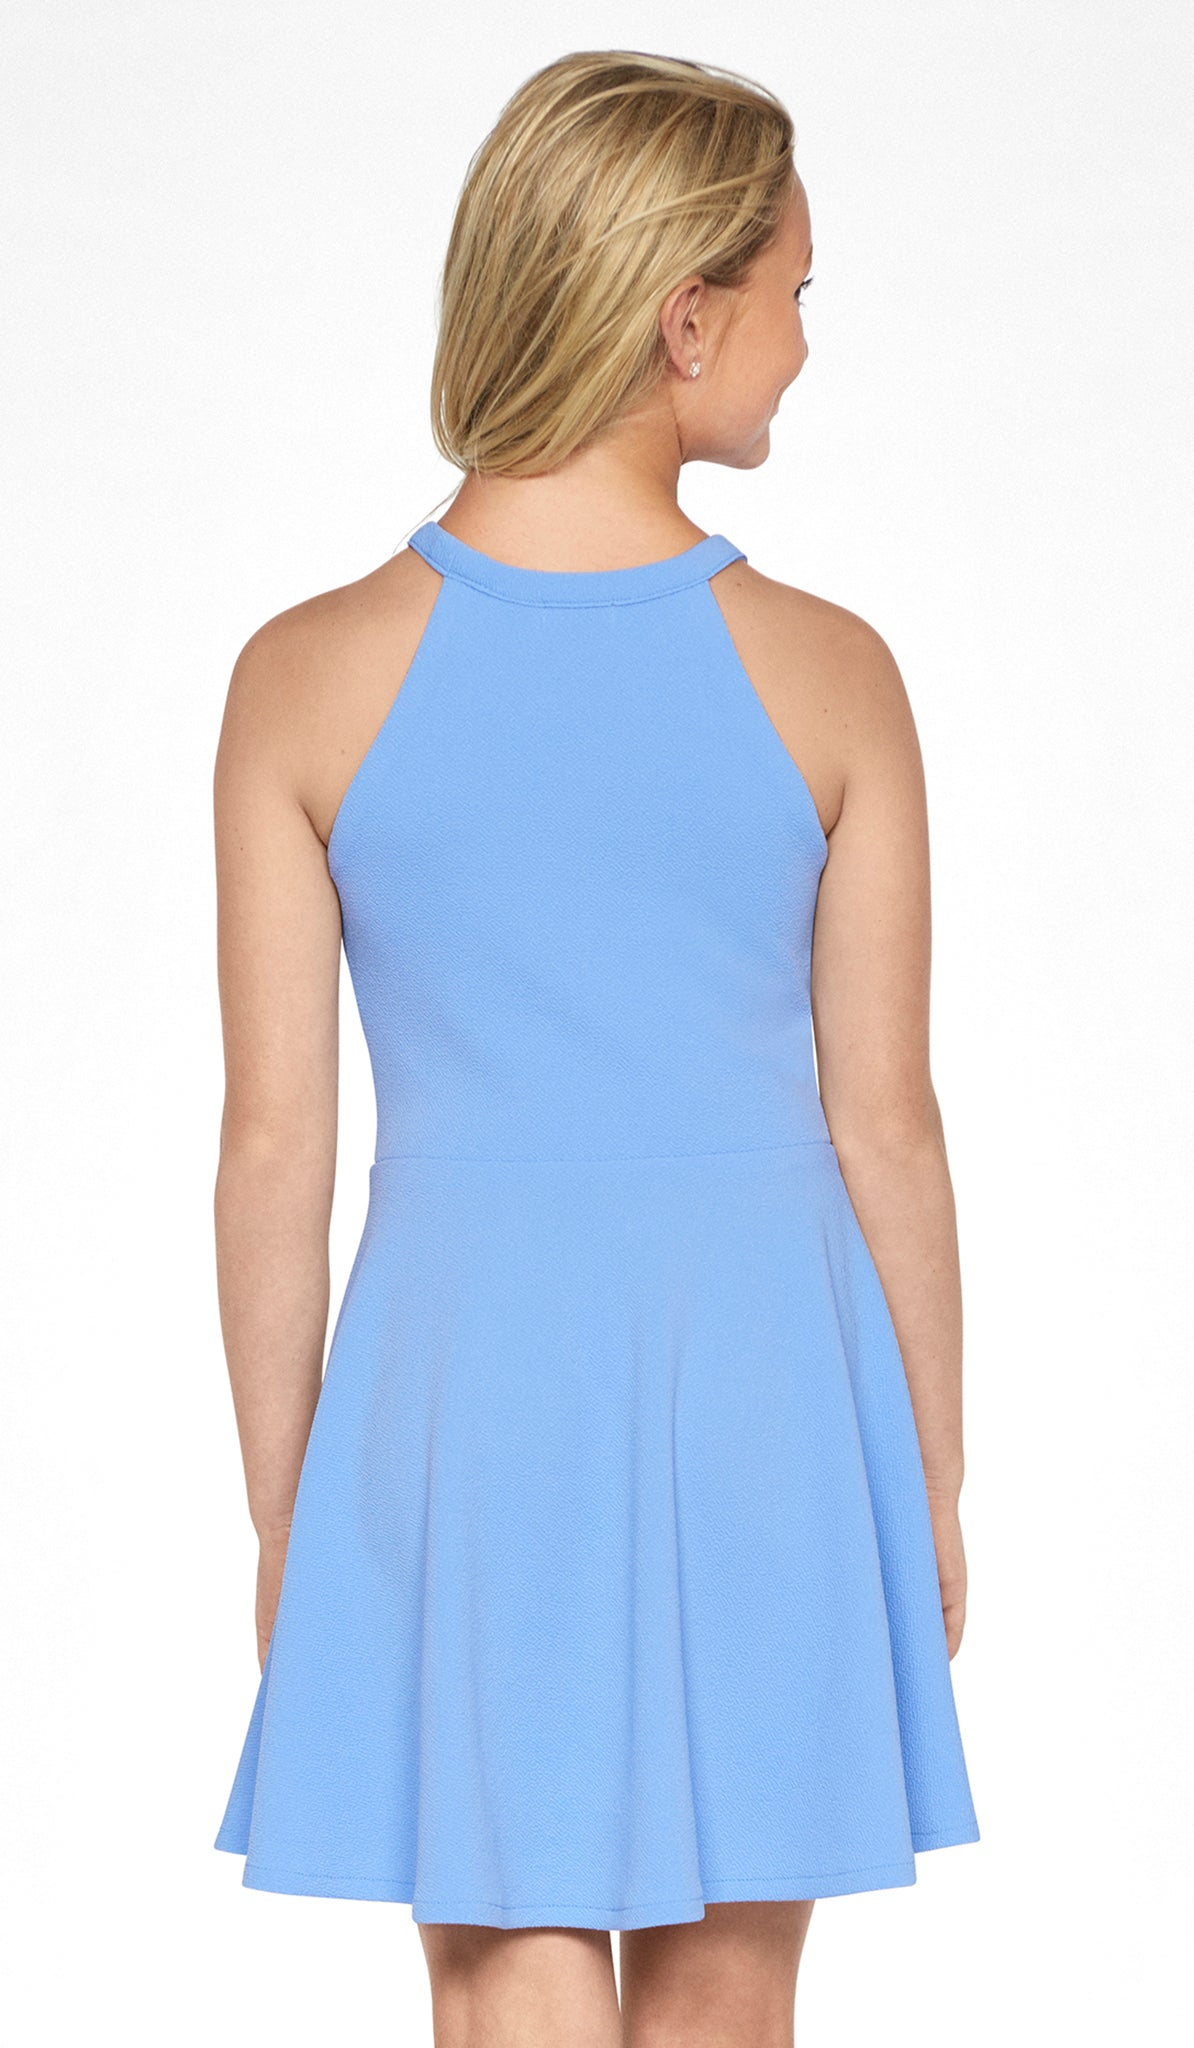 Junior Periwinkle textured knit fit and flare dress with self-colored blocking and mesh detail at neck Sally Miller Elise Dress Juniors Dresses